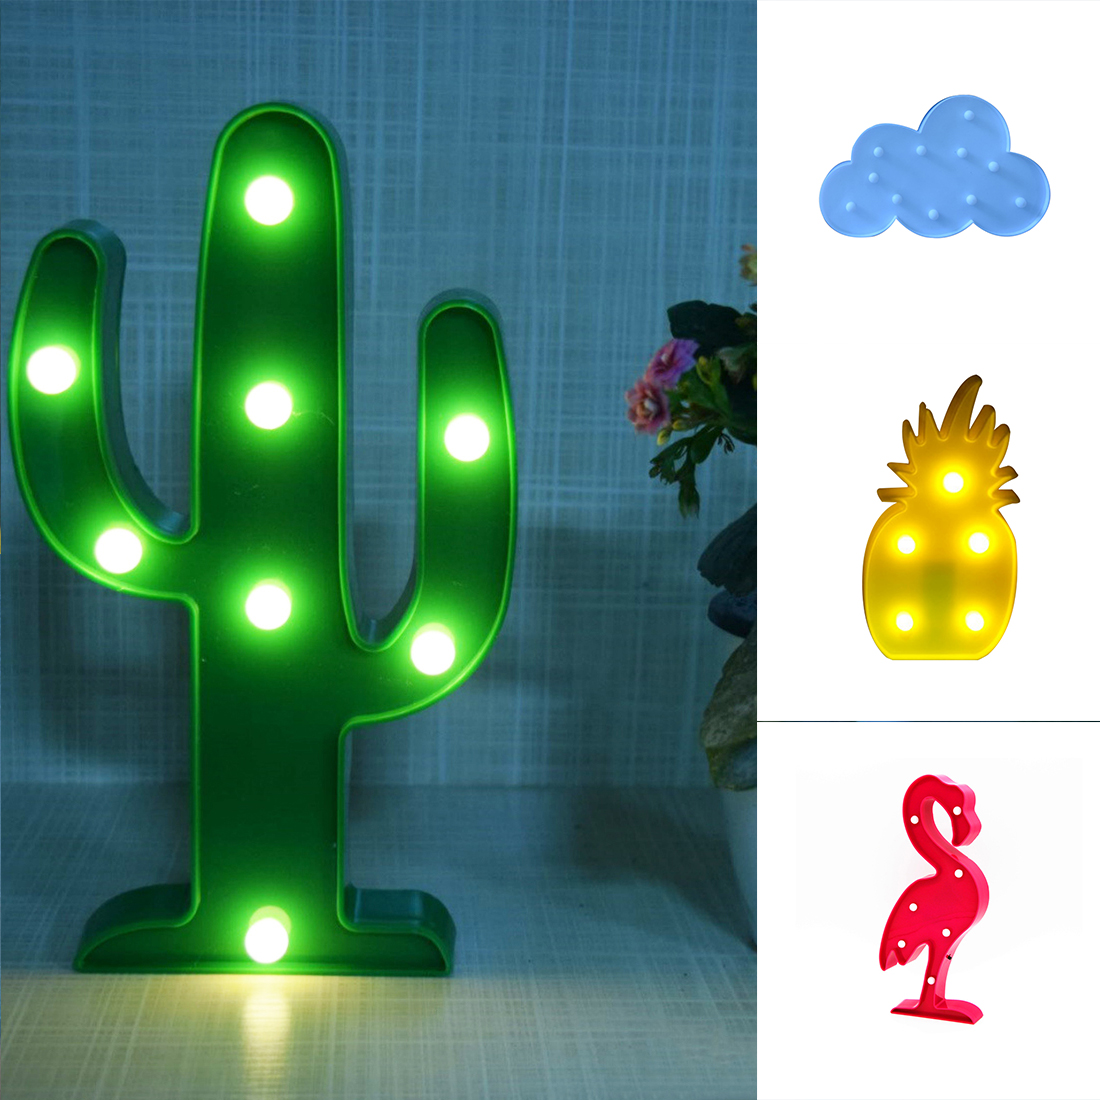 new led flamingo lamp pineapple cactus clouds nightlight romantic light table lamp for christmas decorations home decor